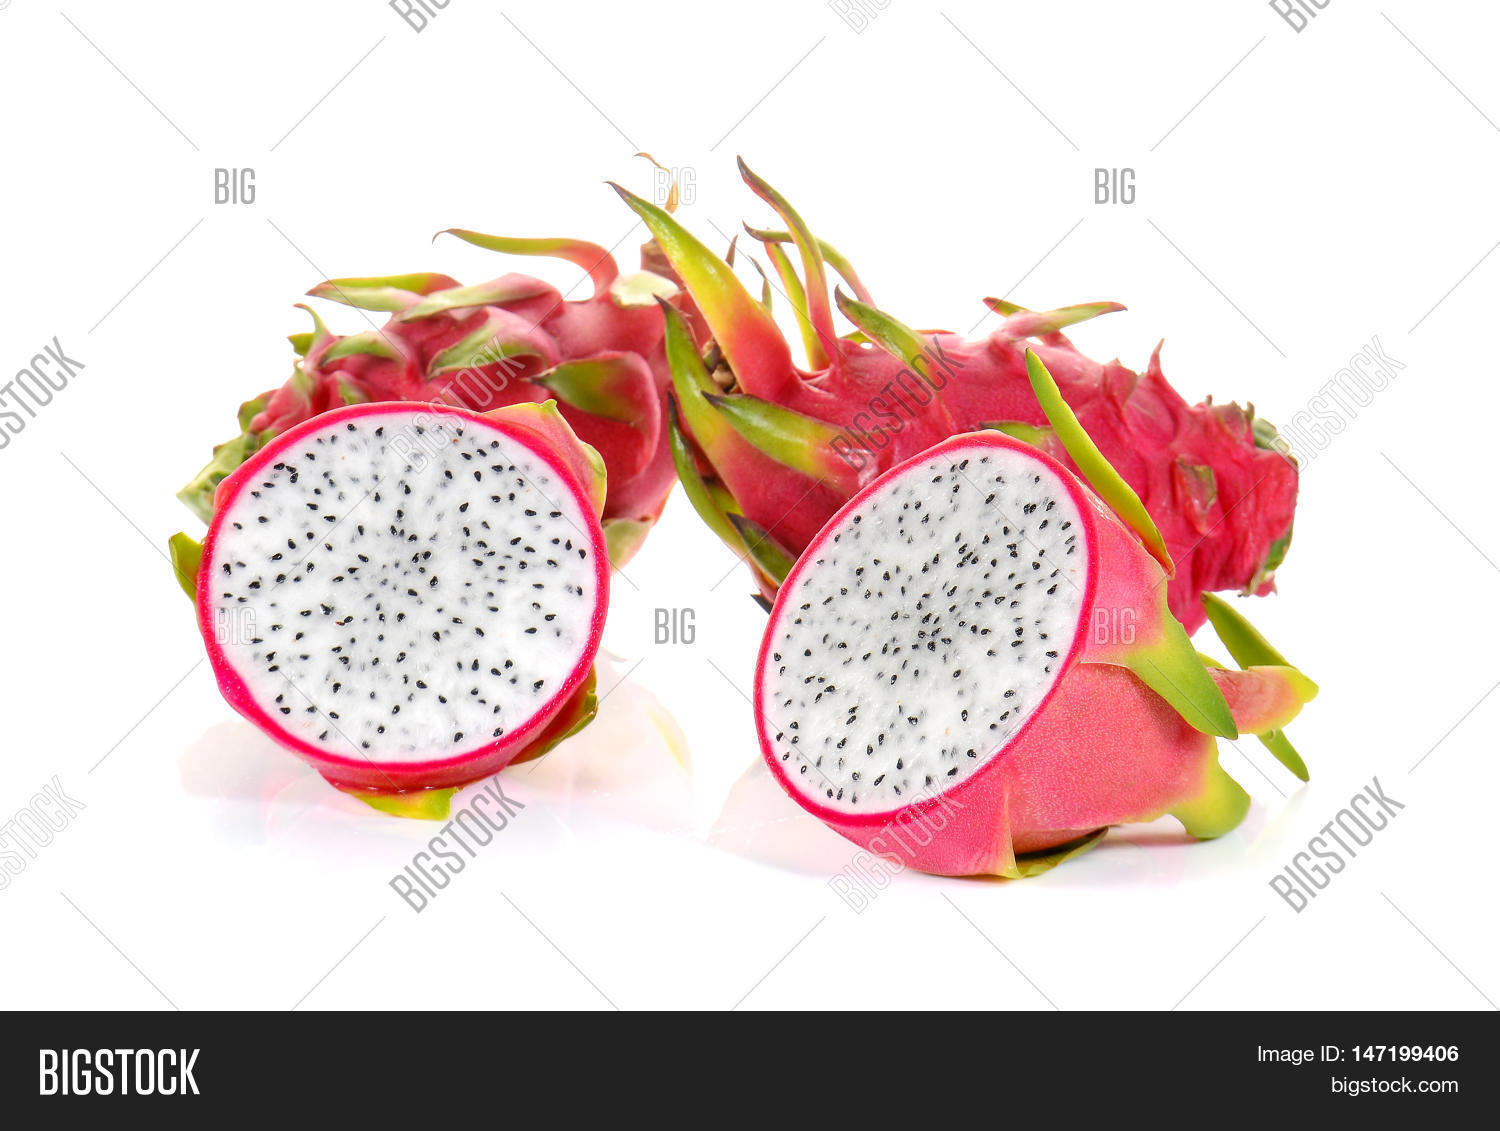 how to cut dragon fruit raw